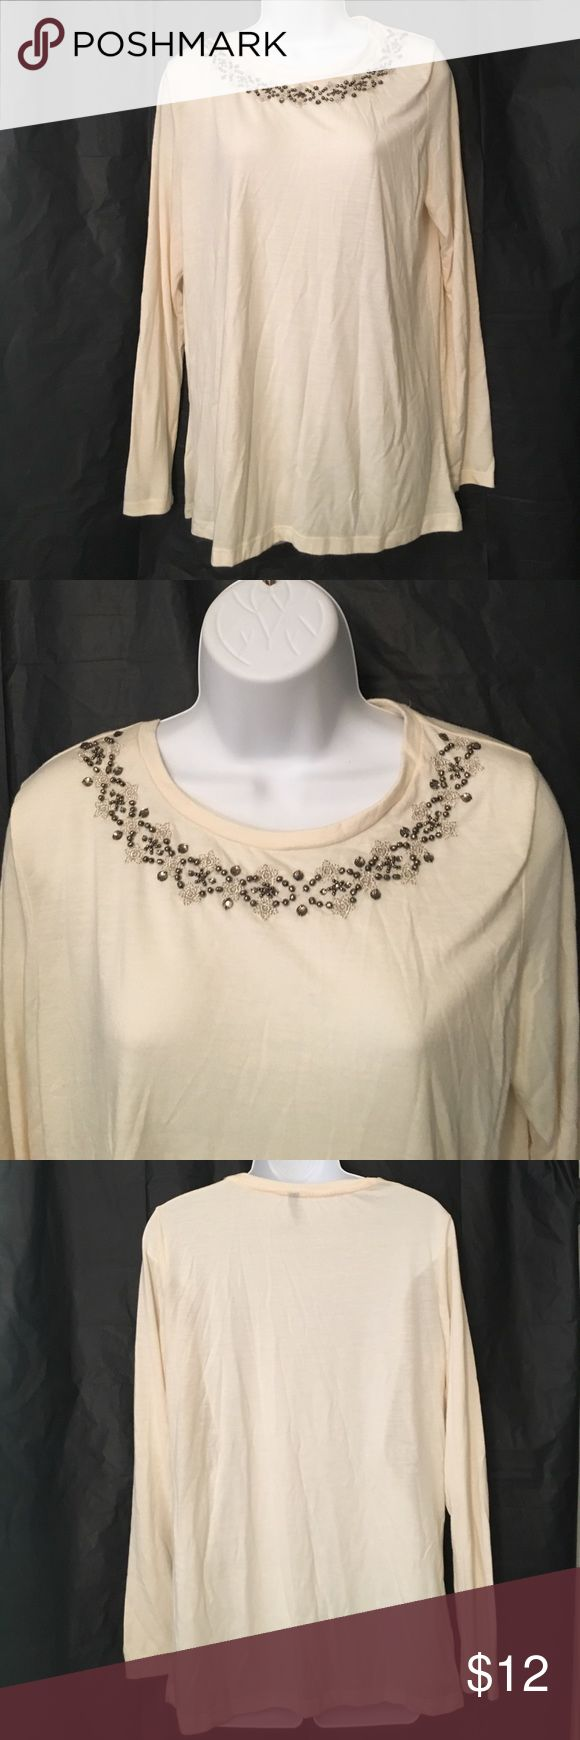 Falls Creek Beautiful Large Beaded Top Falls Creek size large cream color long sleeve top with Beaded design ... very soft light and comfy .....BUNDLE 4 or more & SAVE 30%!!!....FREE GIFT..Choose your free gift by either commenting on the gift or commenting on one of the items you purchased indicating which # gift you would like!! $$20 purchase or More ONLY!!! Falls Creek Tops Tees - Long Sleeve